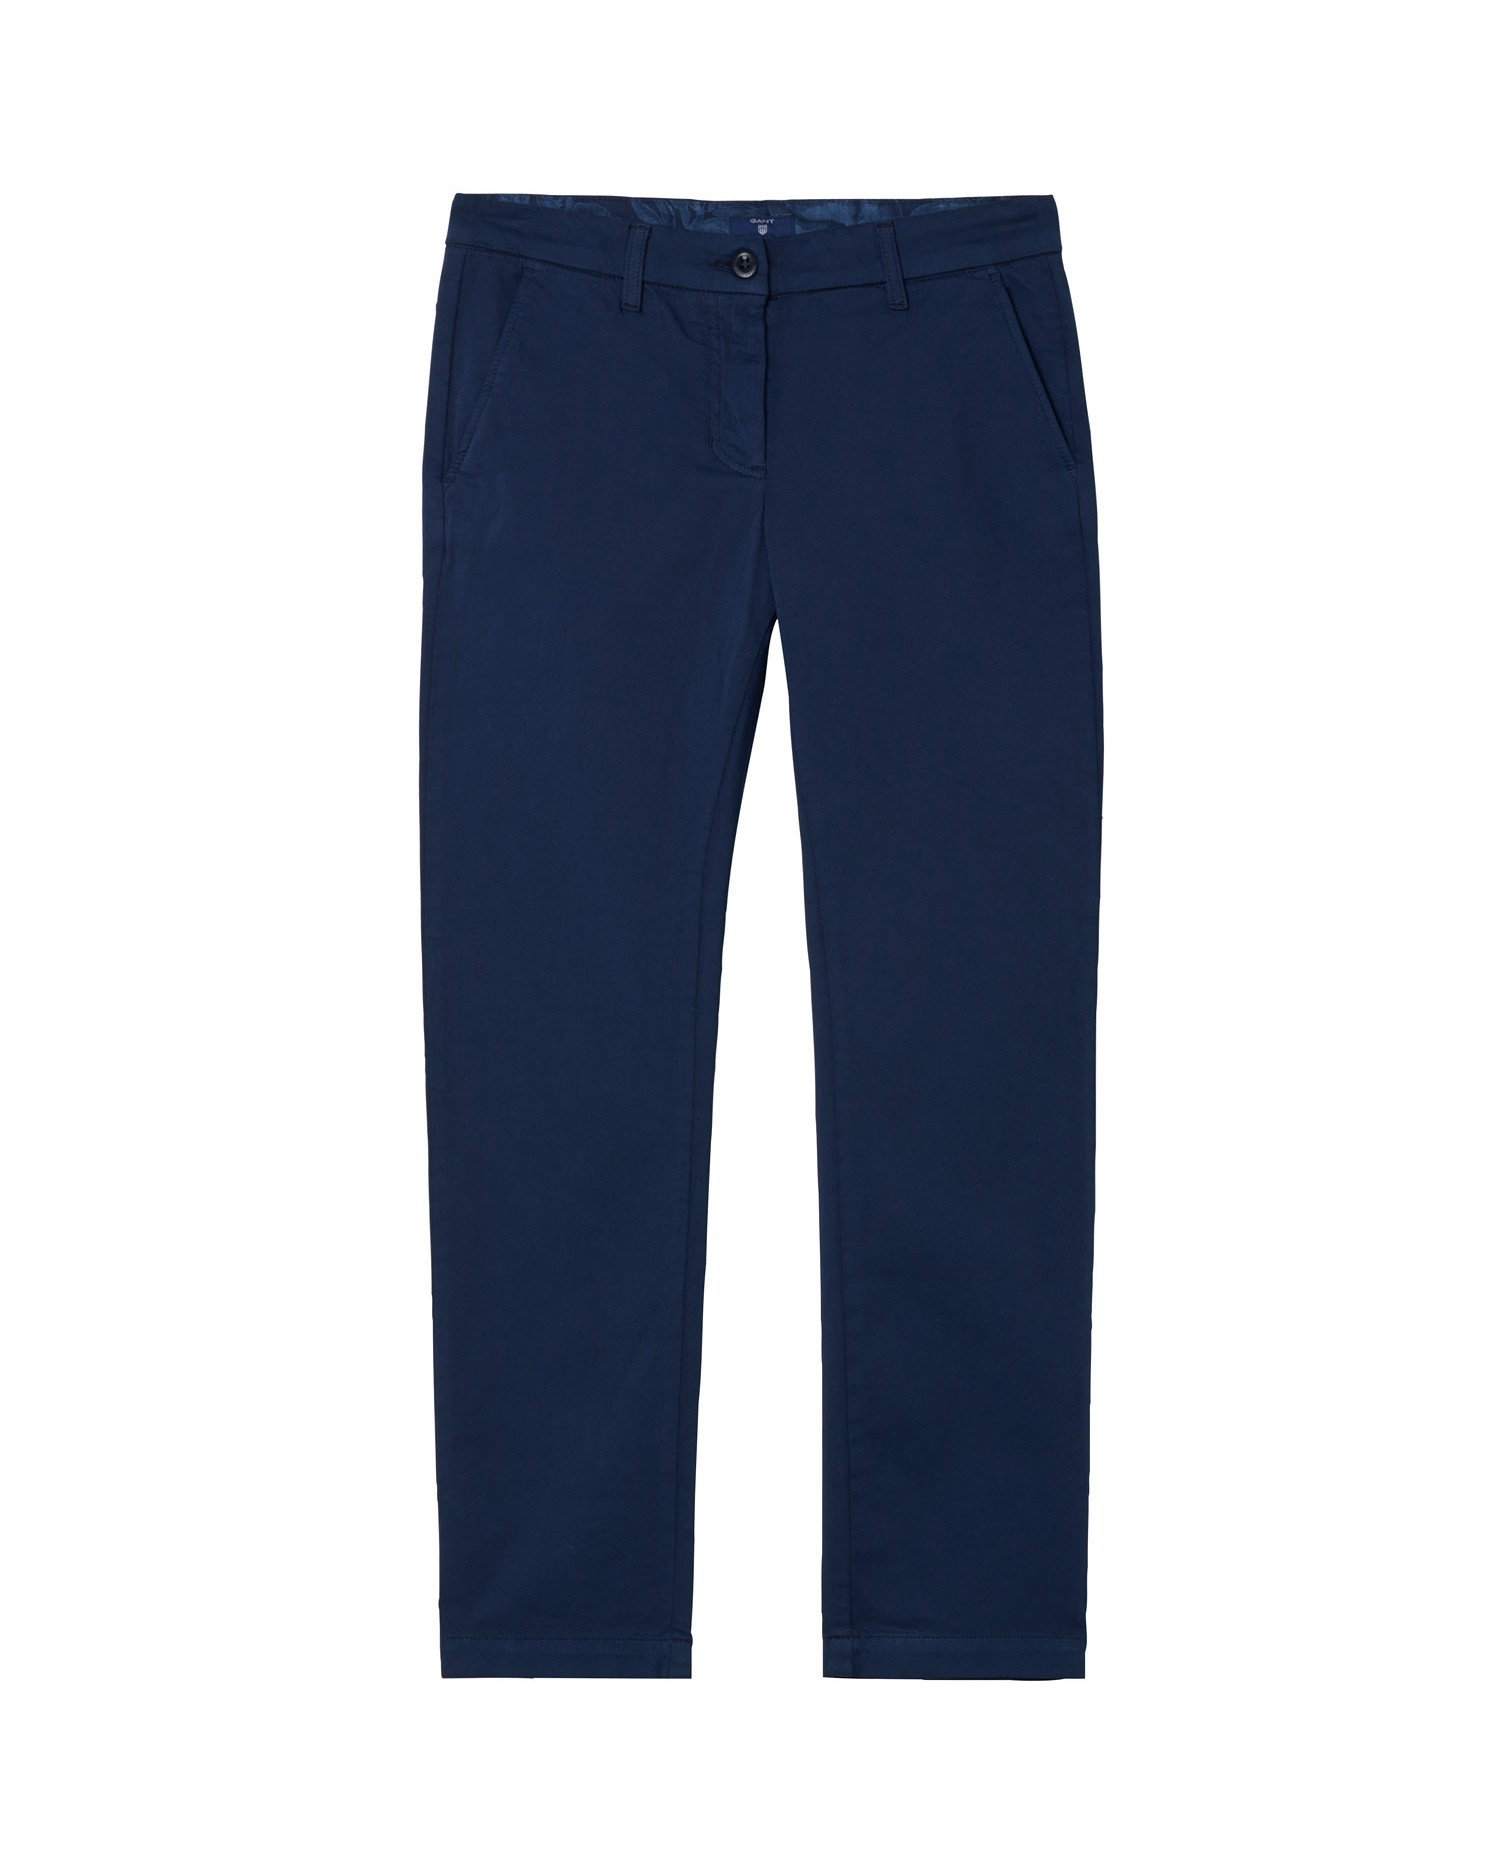 GANT Women's Trousers - 414930